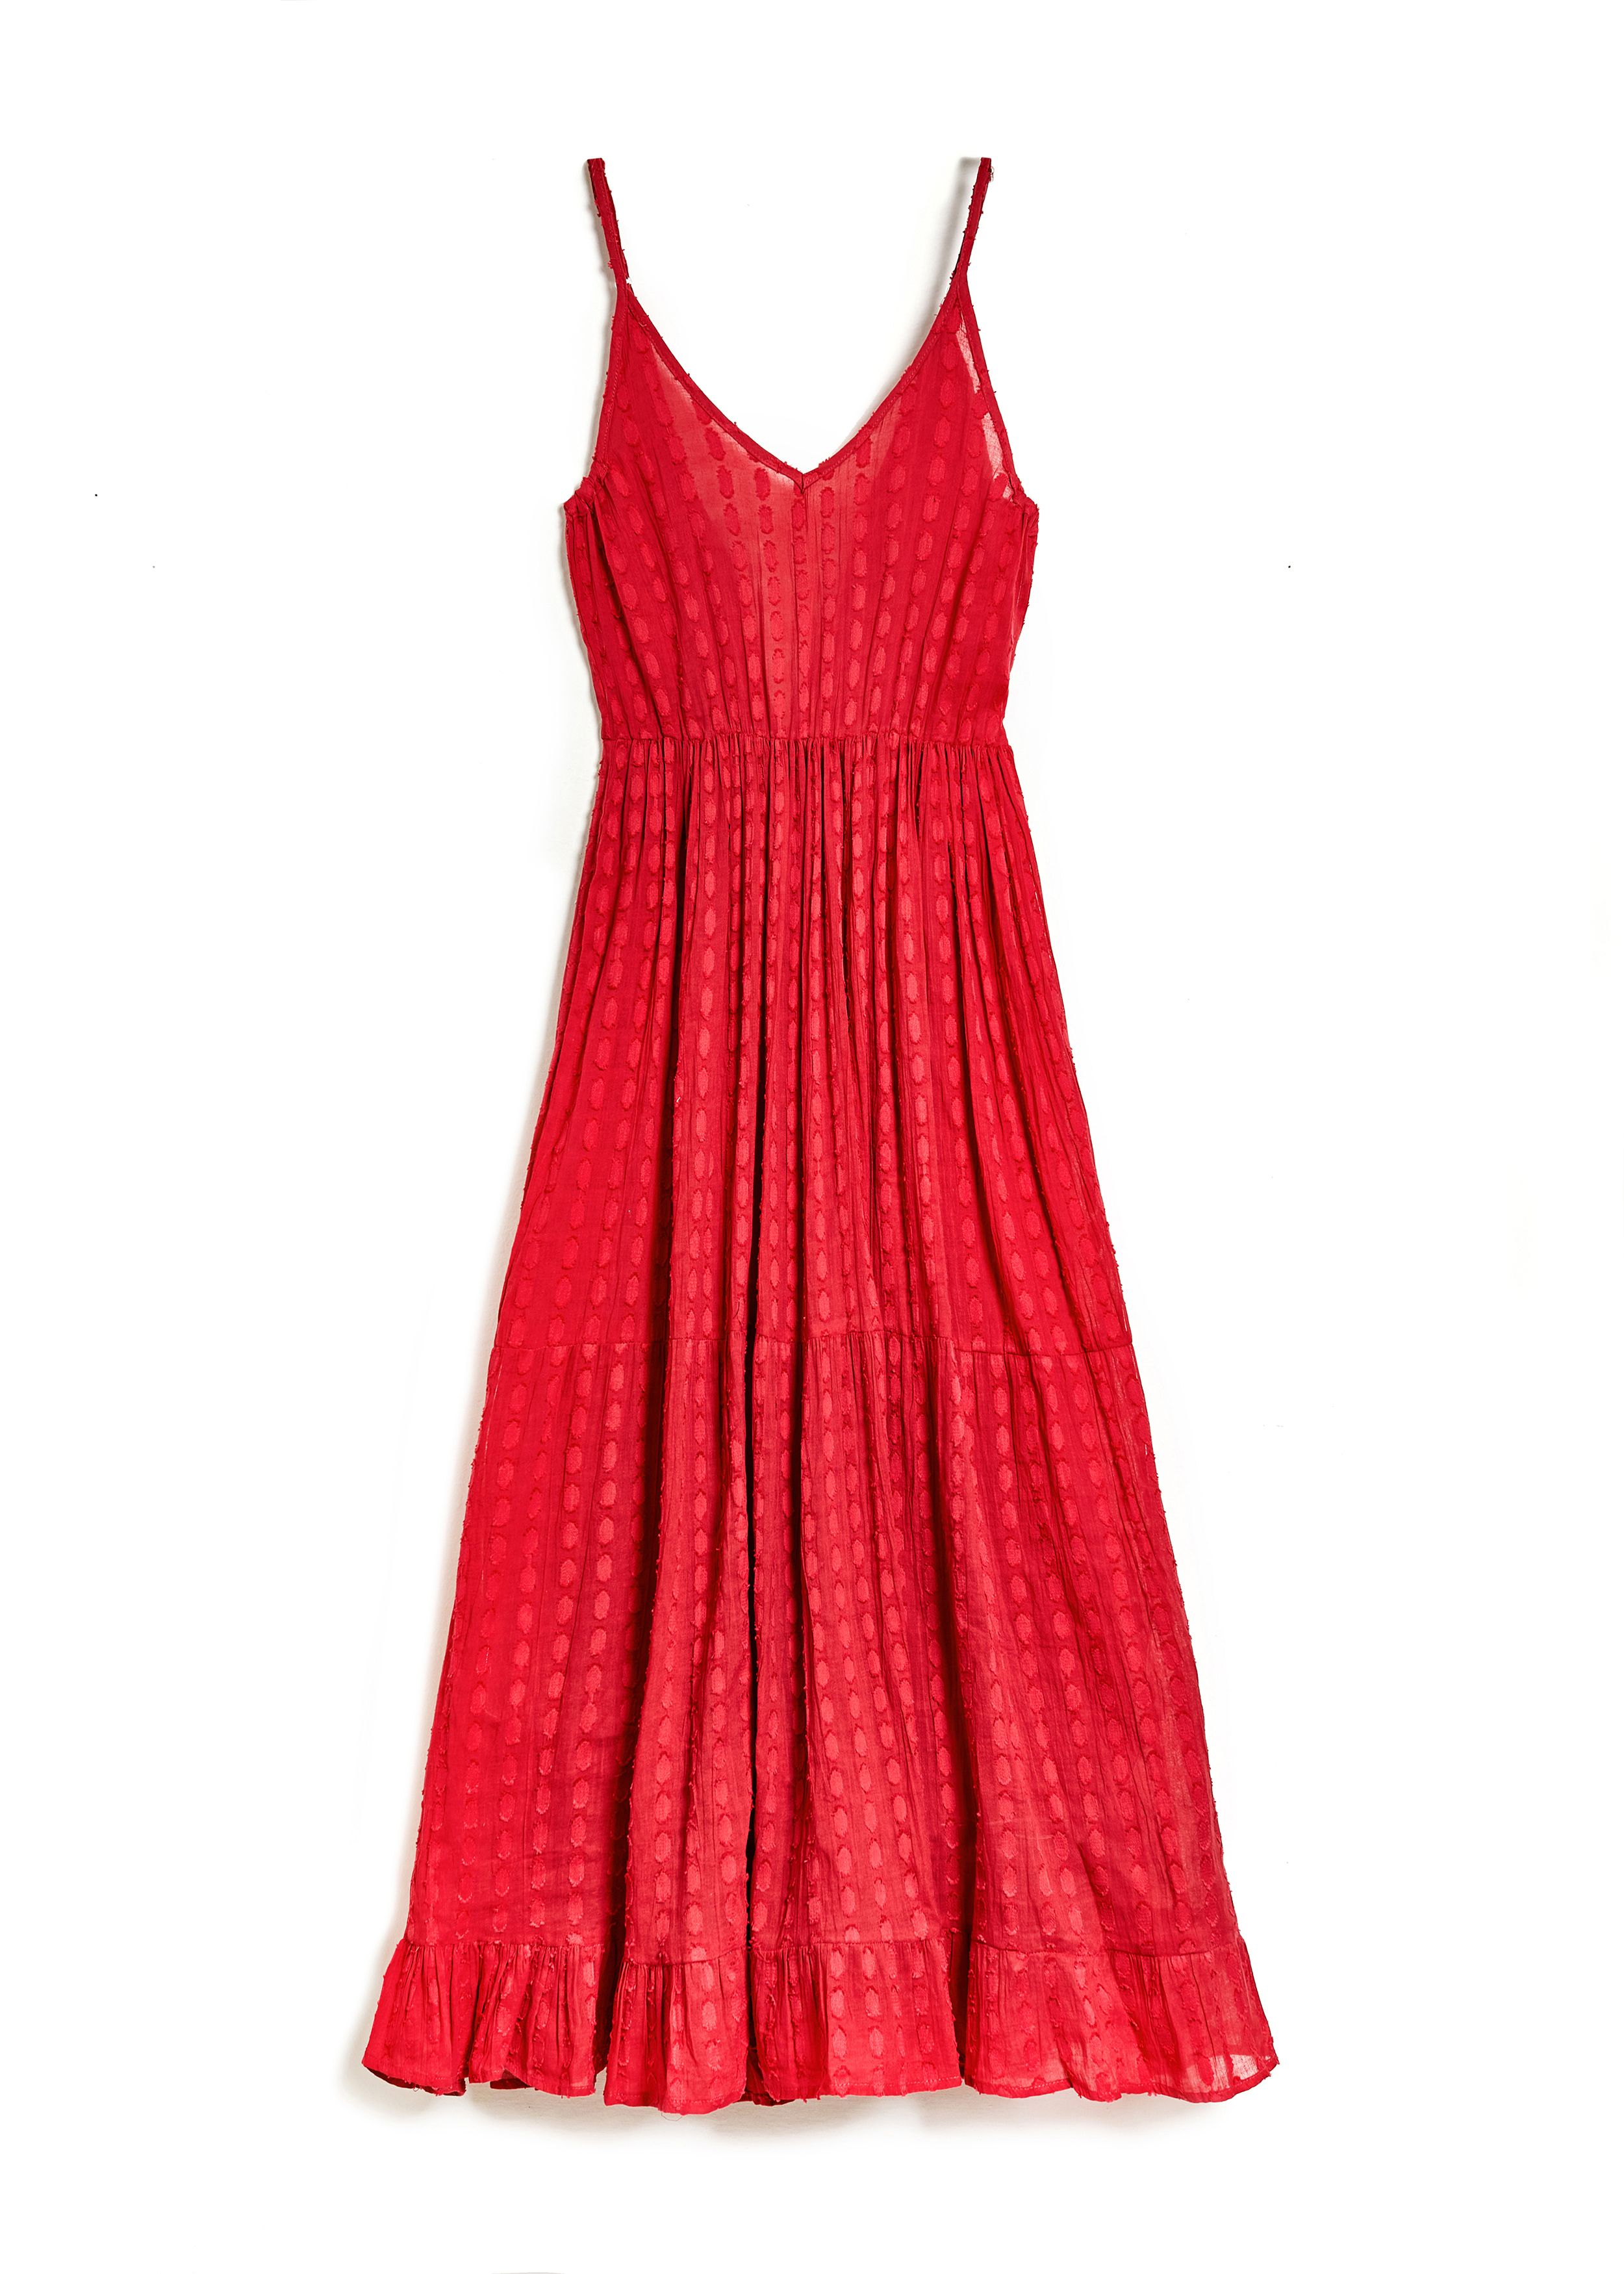 LONG DRESS IN CHERRY COTTON